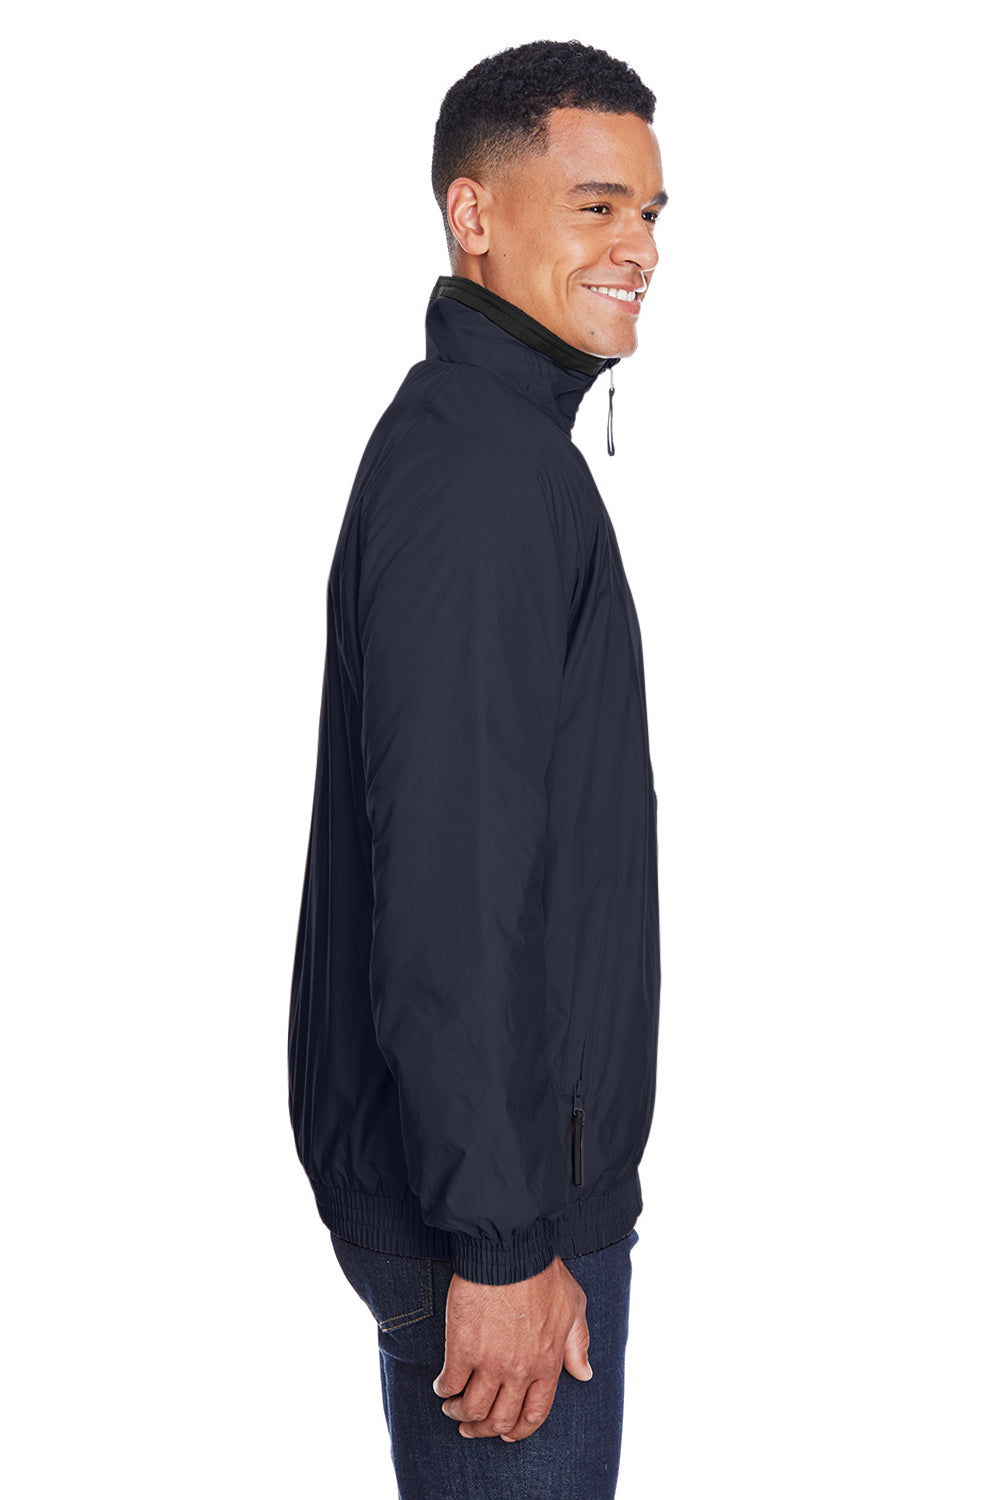 Harriton M740 Mens Wind & Water Resistant Full Zip Jacket Navy Blue Side